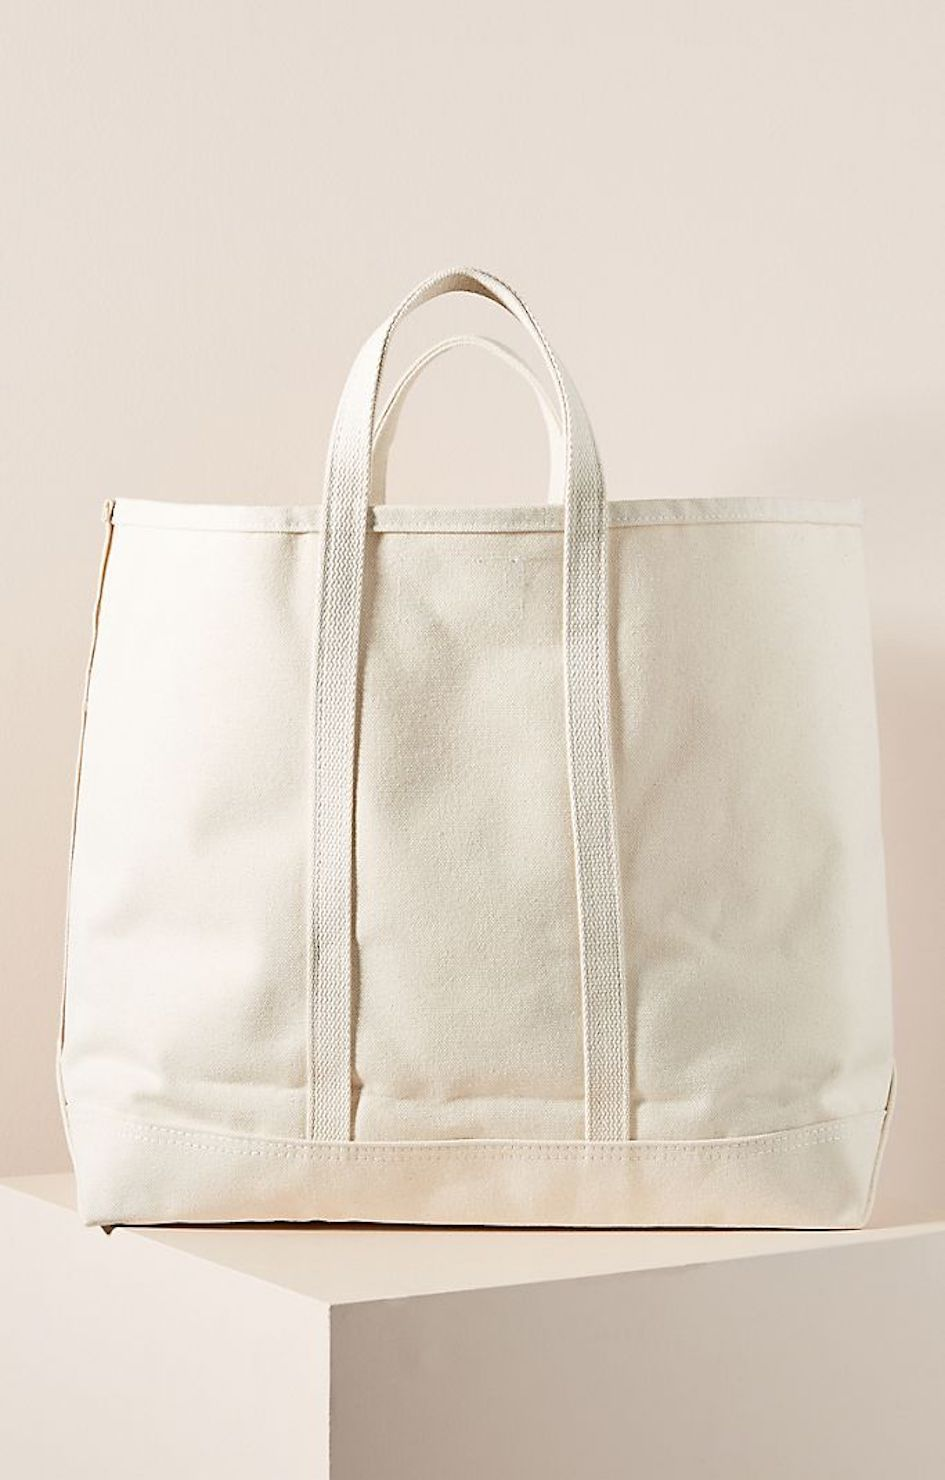 Imperfect Heart Tote - Medium